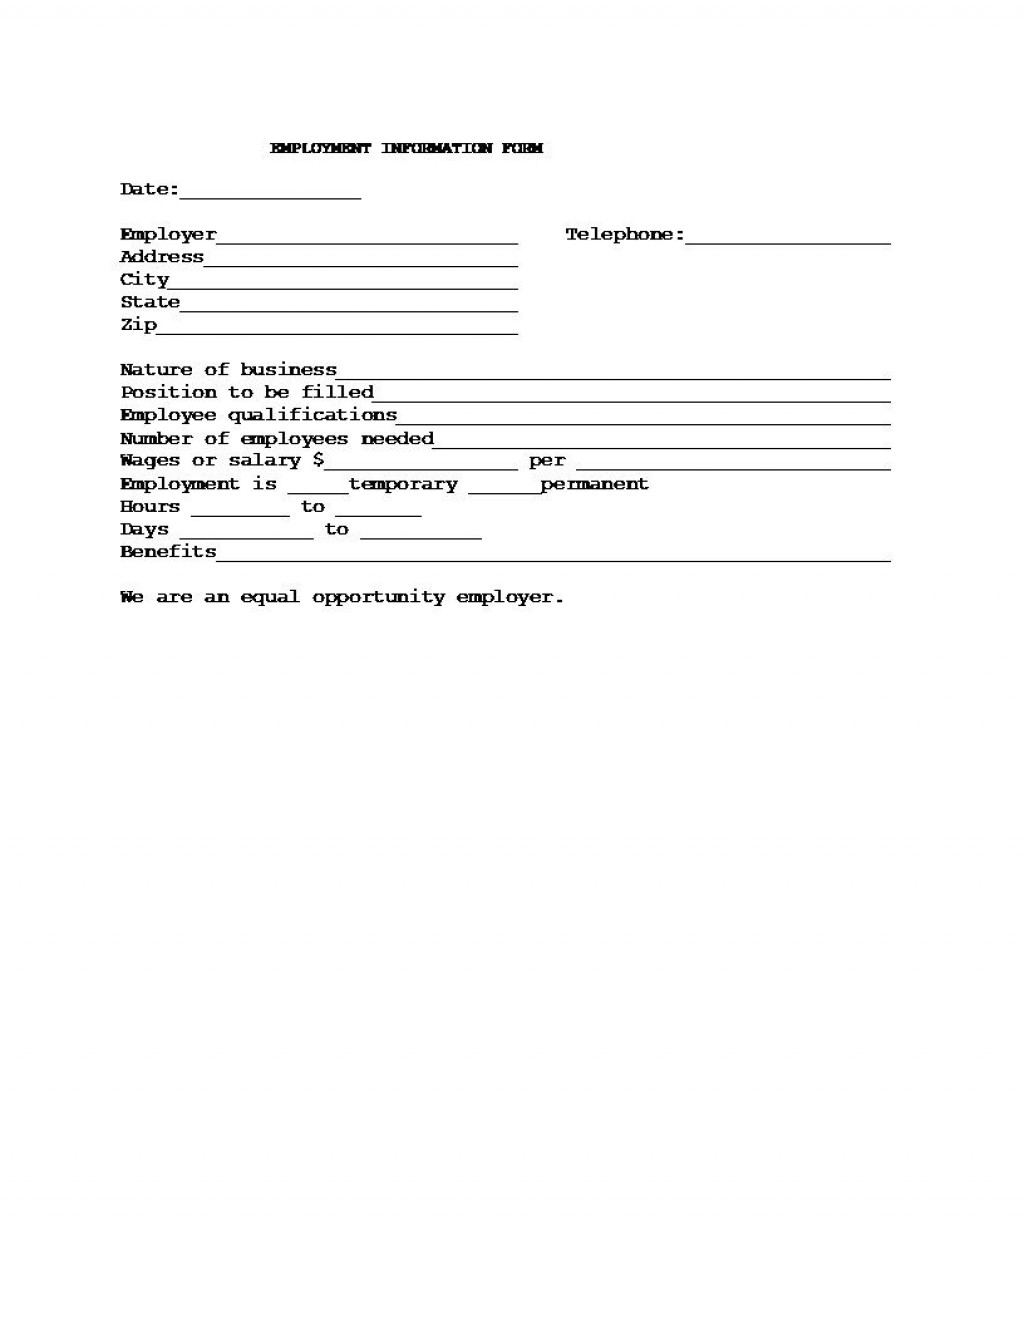 009 Incredible Employment Information Form Template Example  Employee Registration Free Download Application Malaysia WordLarge